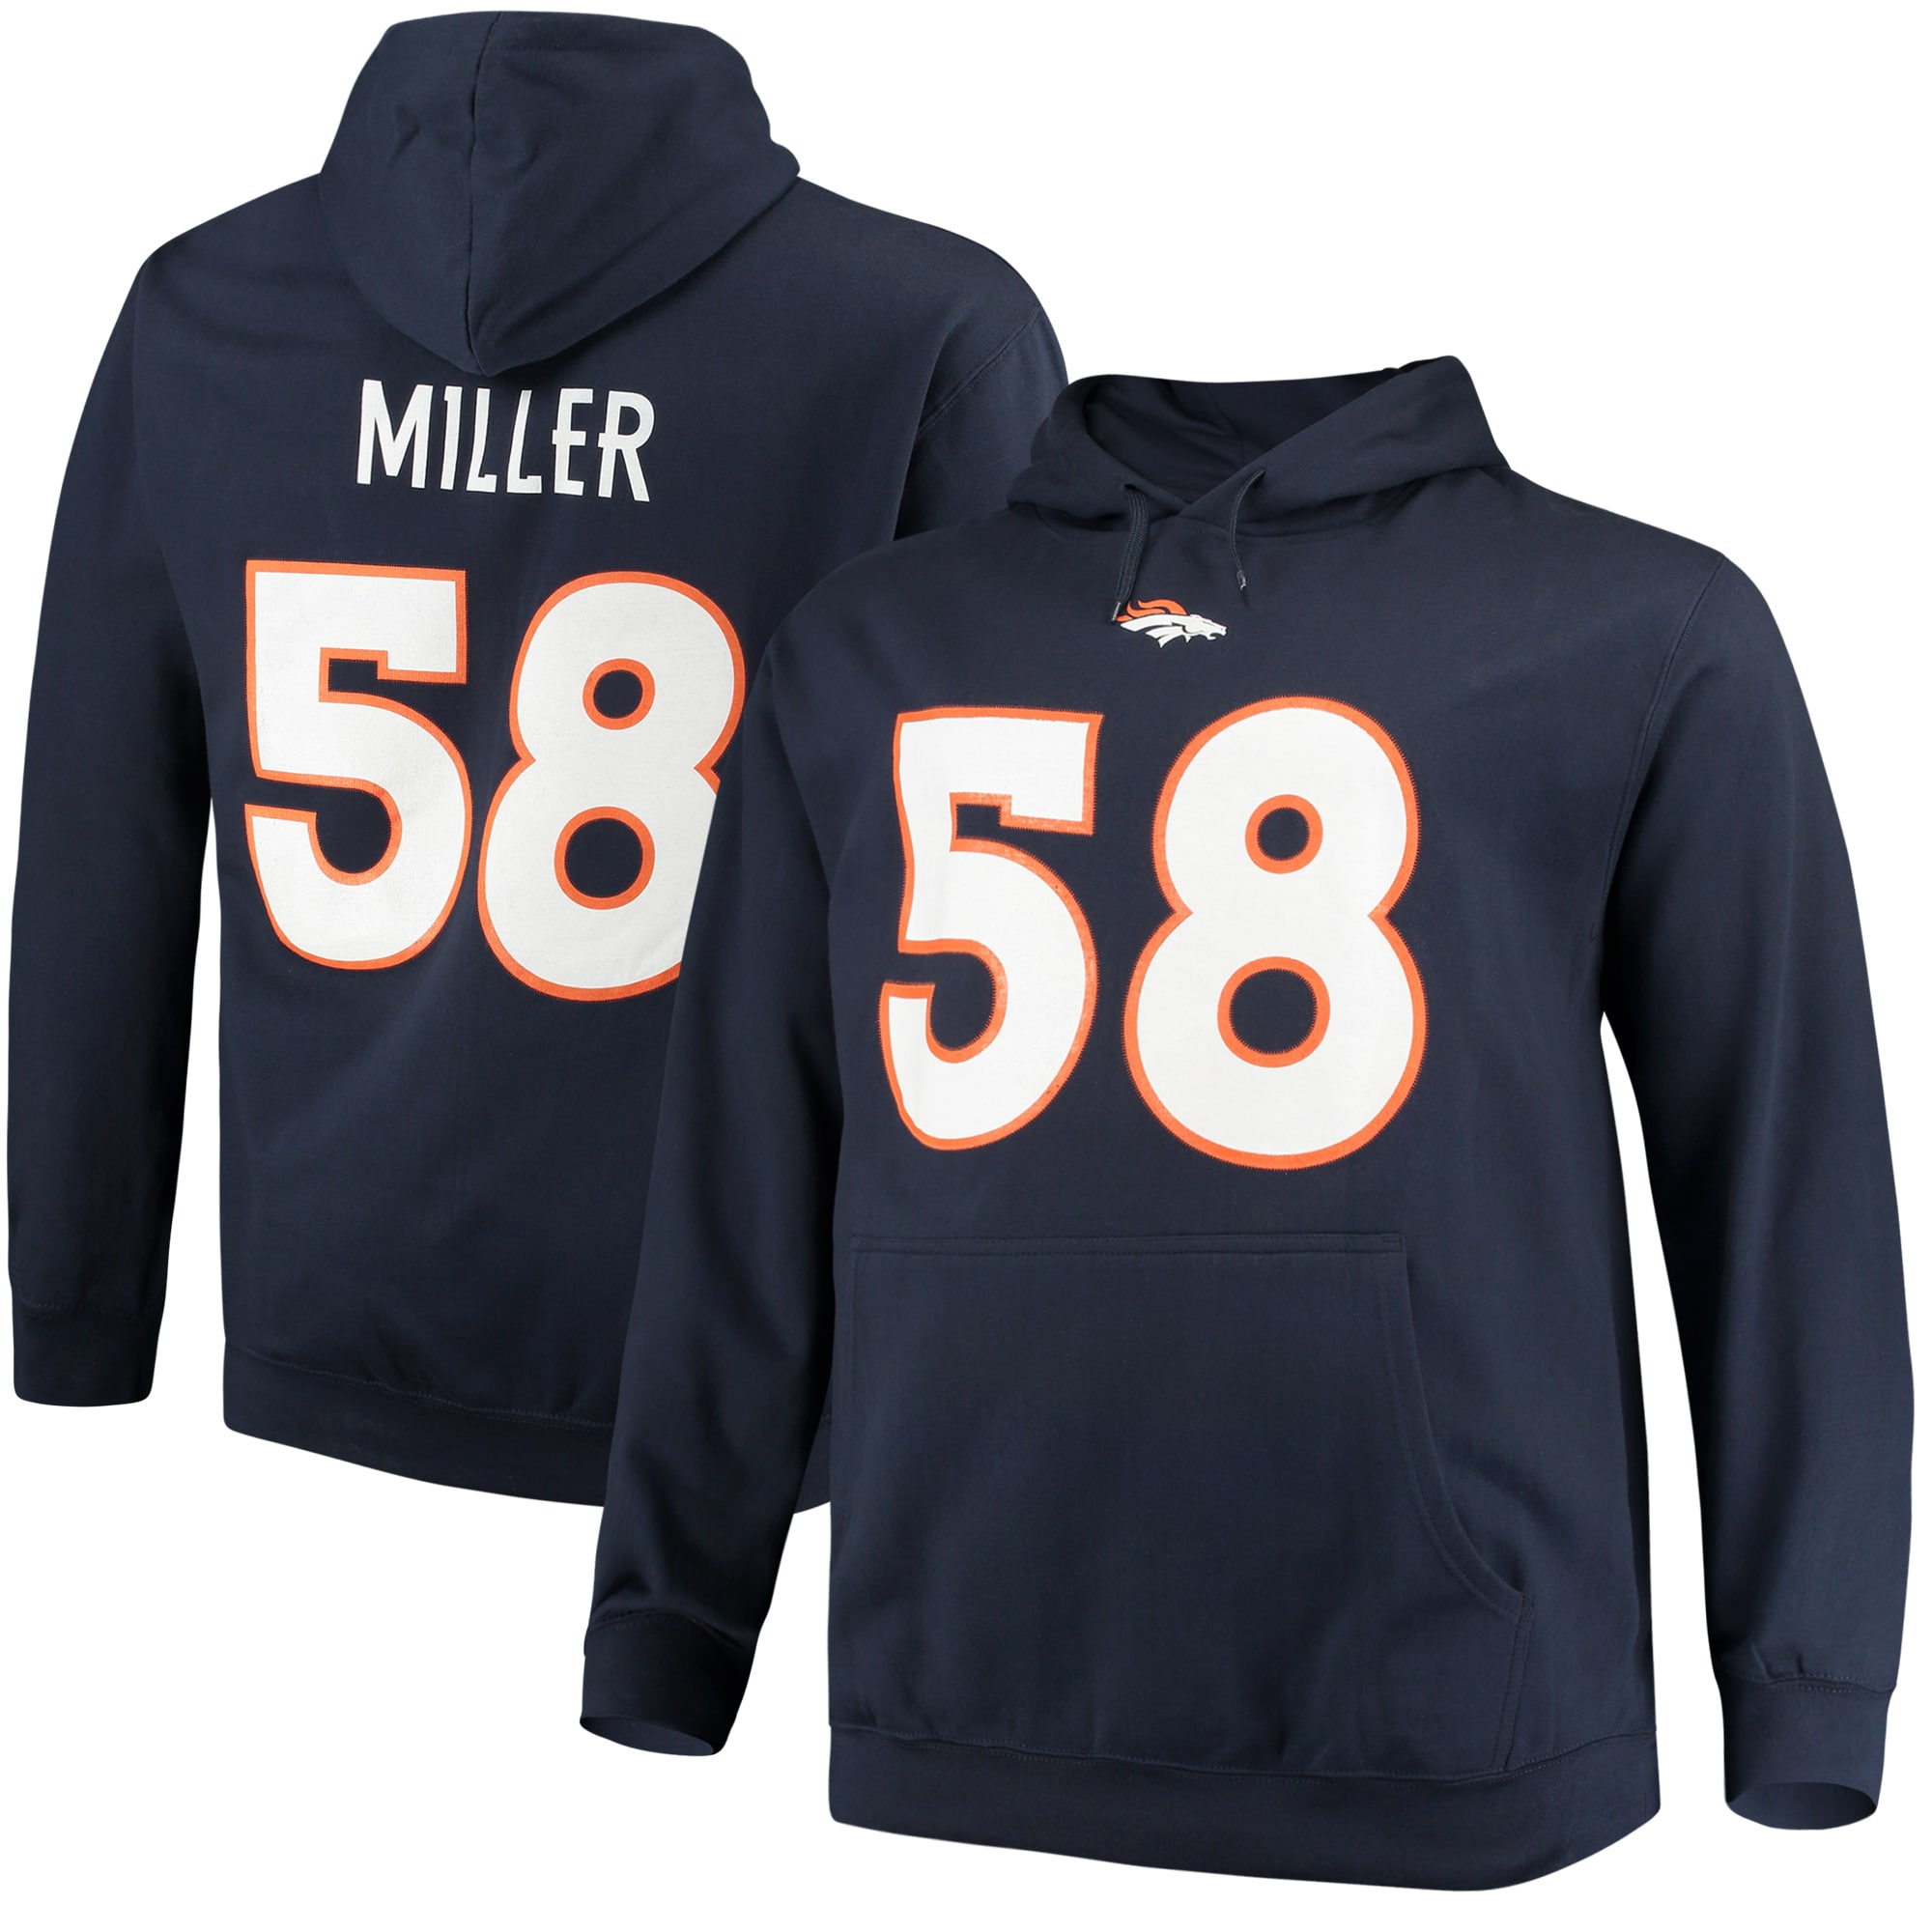 Von Miller Denver Broncos Majestic Big & Tall Name & Number Pullover Hoodie - Navy